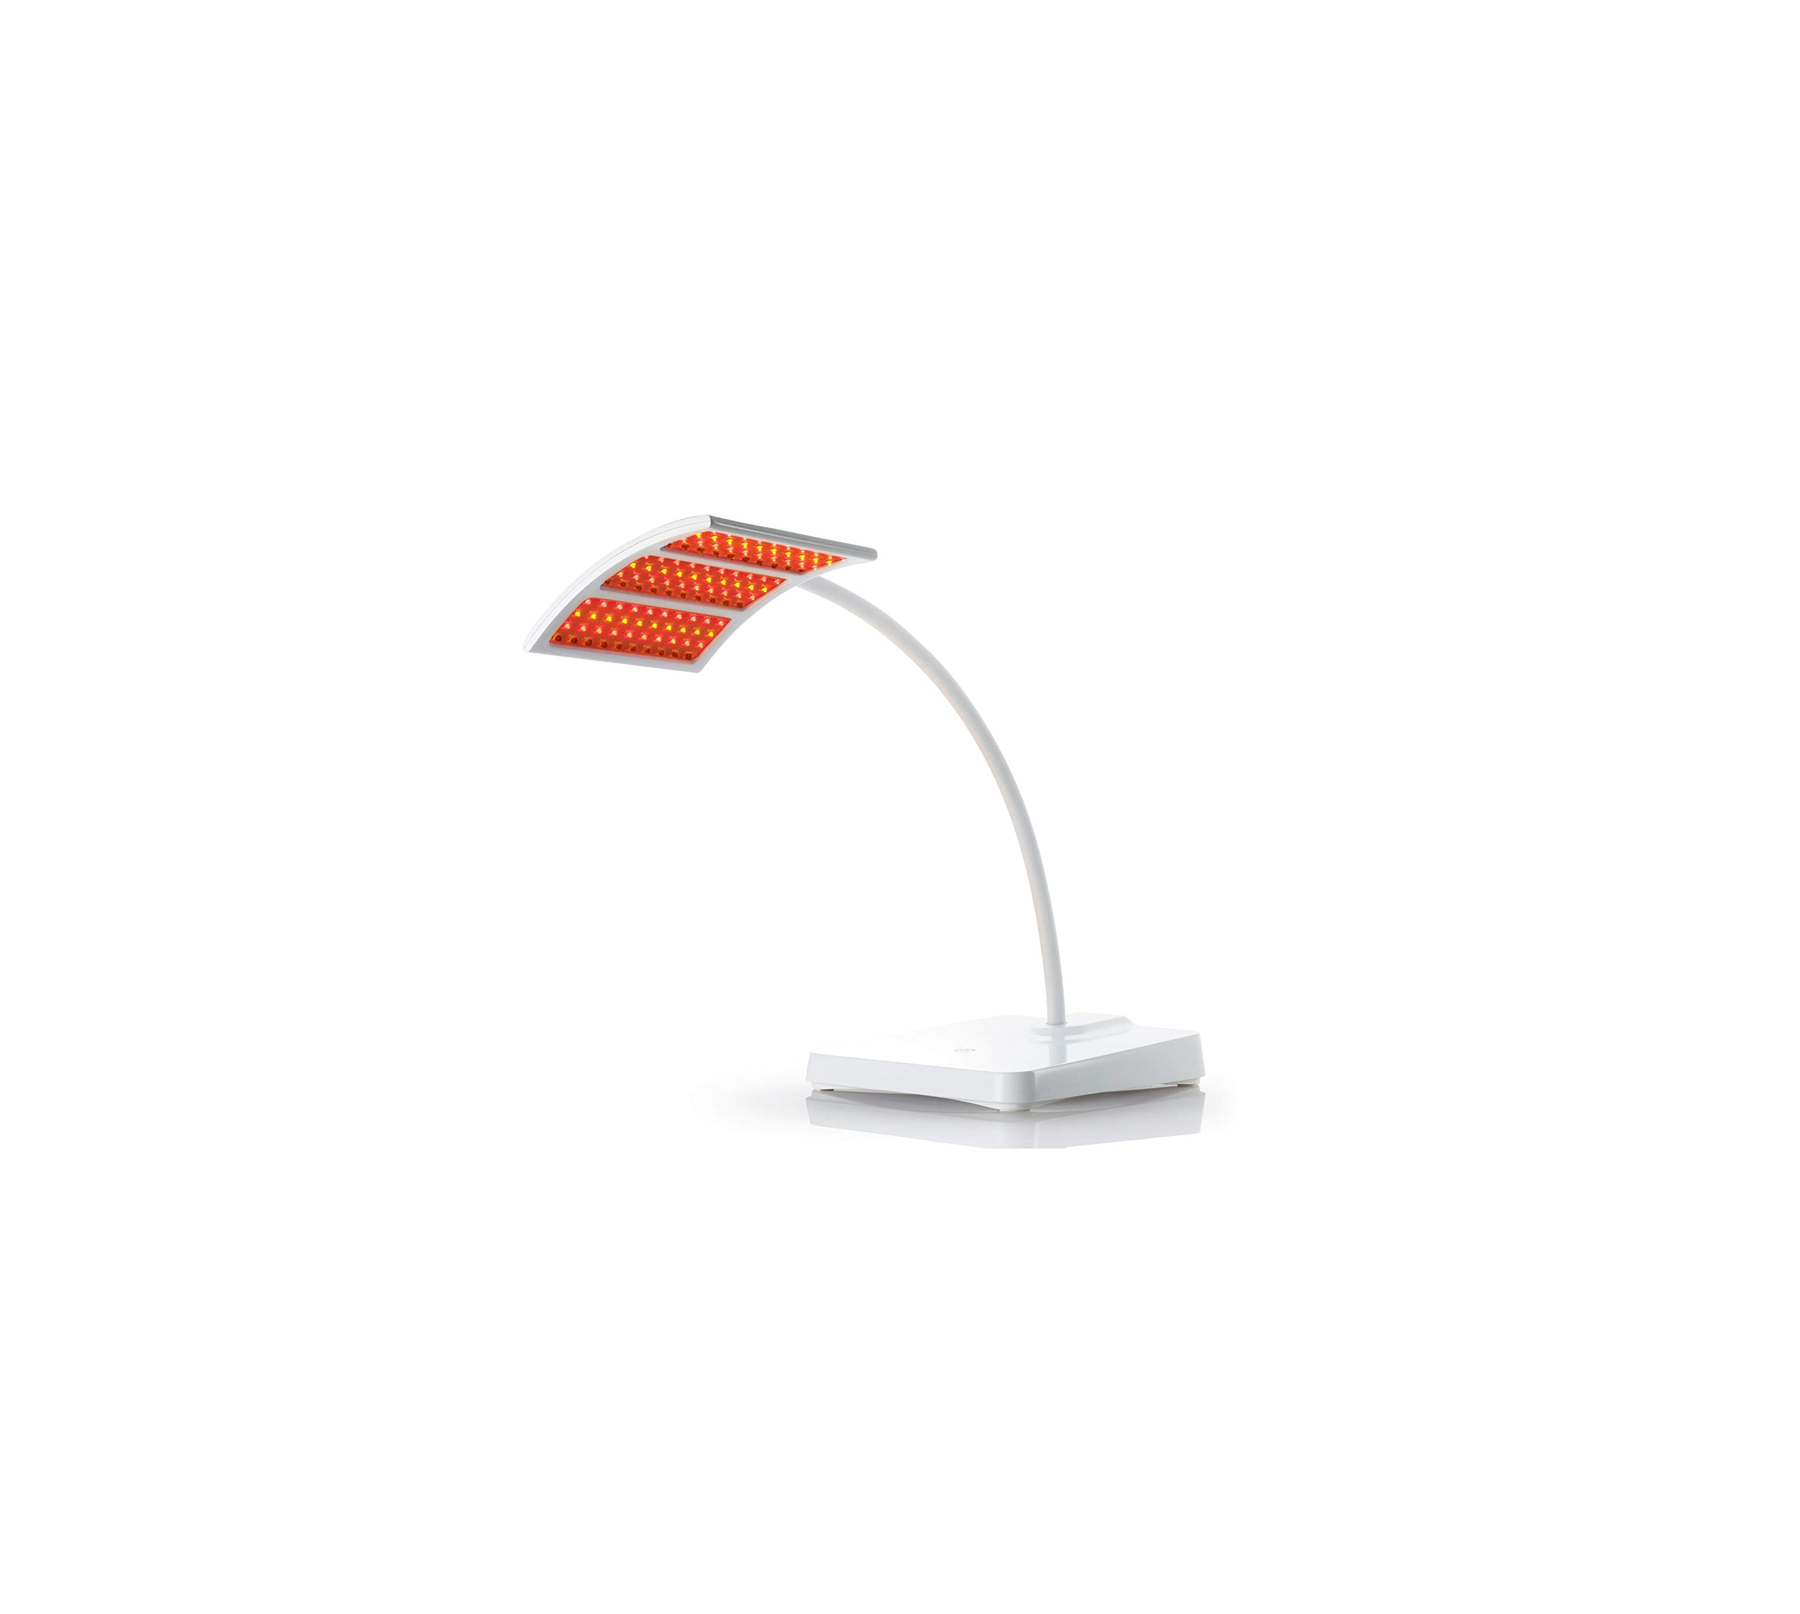 For Powerful Skin Recovery: Trophy Skin RejuvaliteMD Anti-Aging Red LED Light Therapy